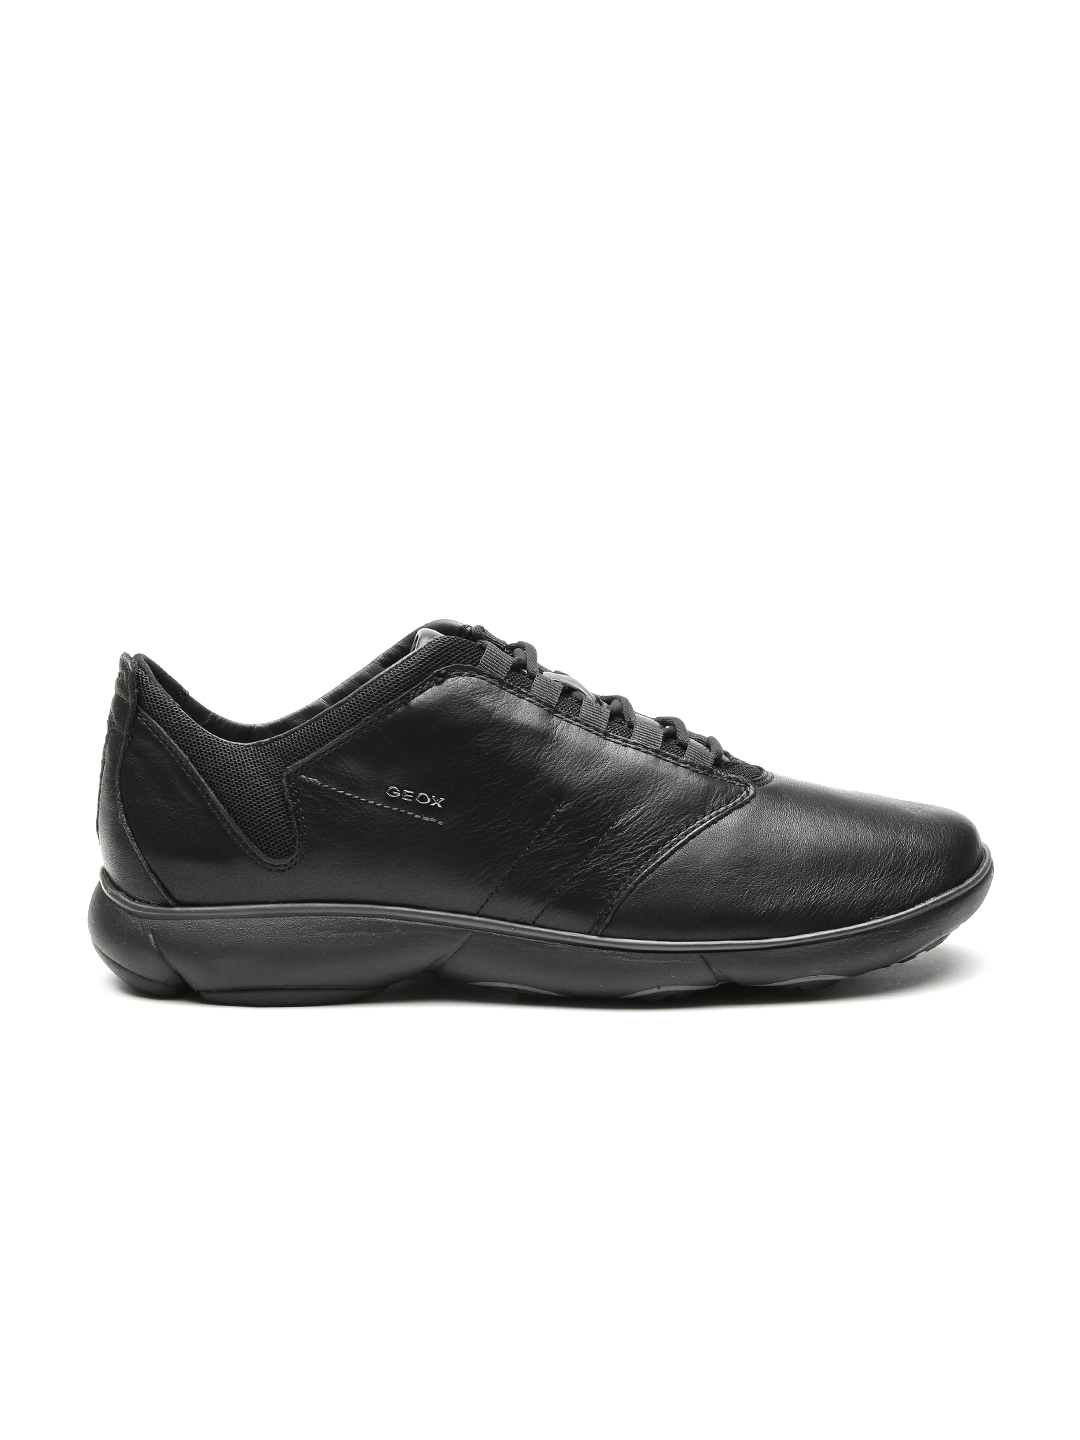 5386f010dde GEOX Nebula Respira Men Black Breathable Italian Patent Leather Slip-On  Sneakers